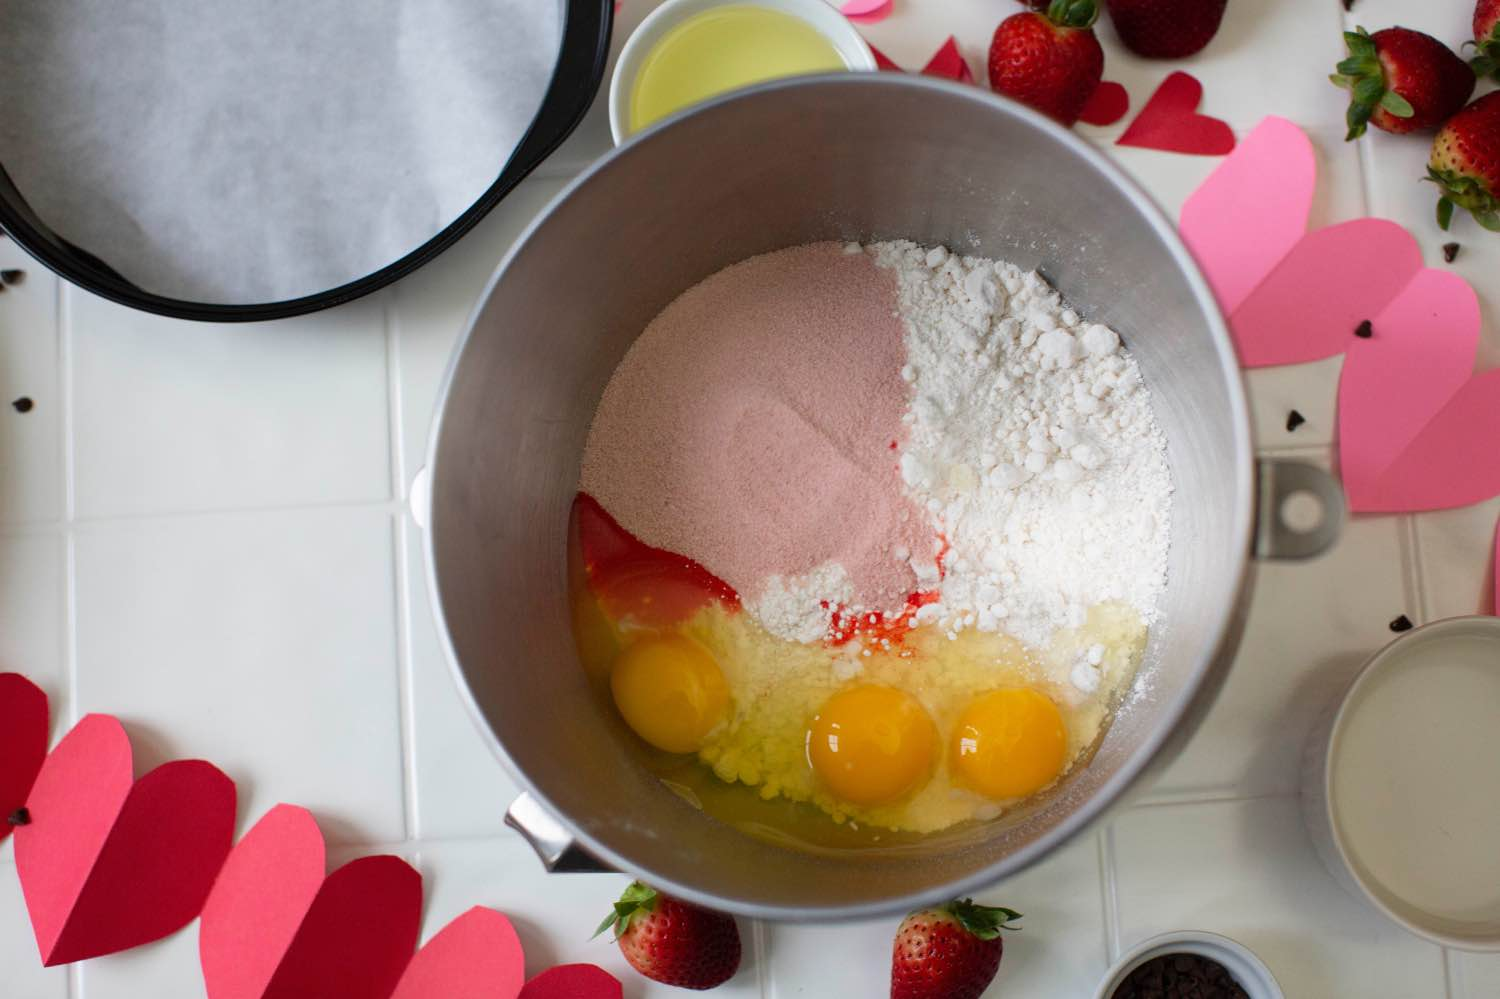 dessert recipe tutorial strawberry cake with whipped cream frosting